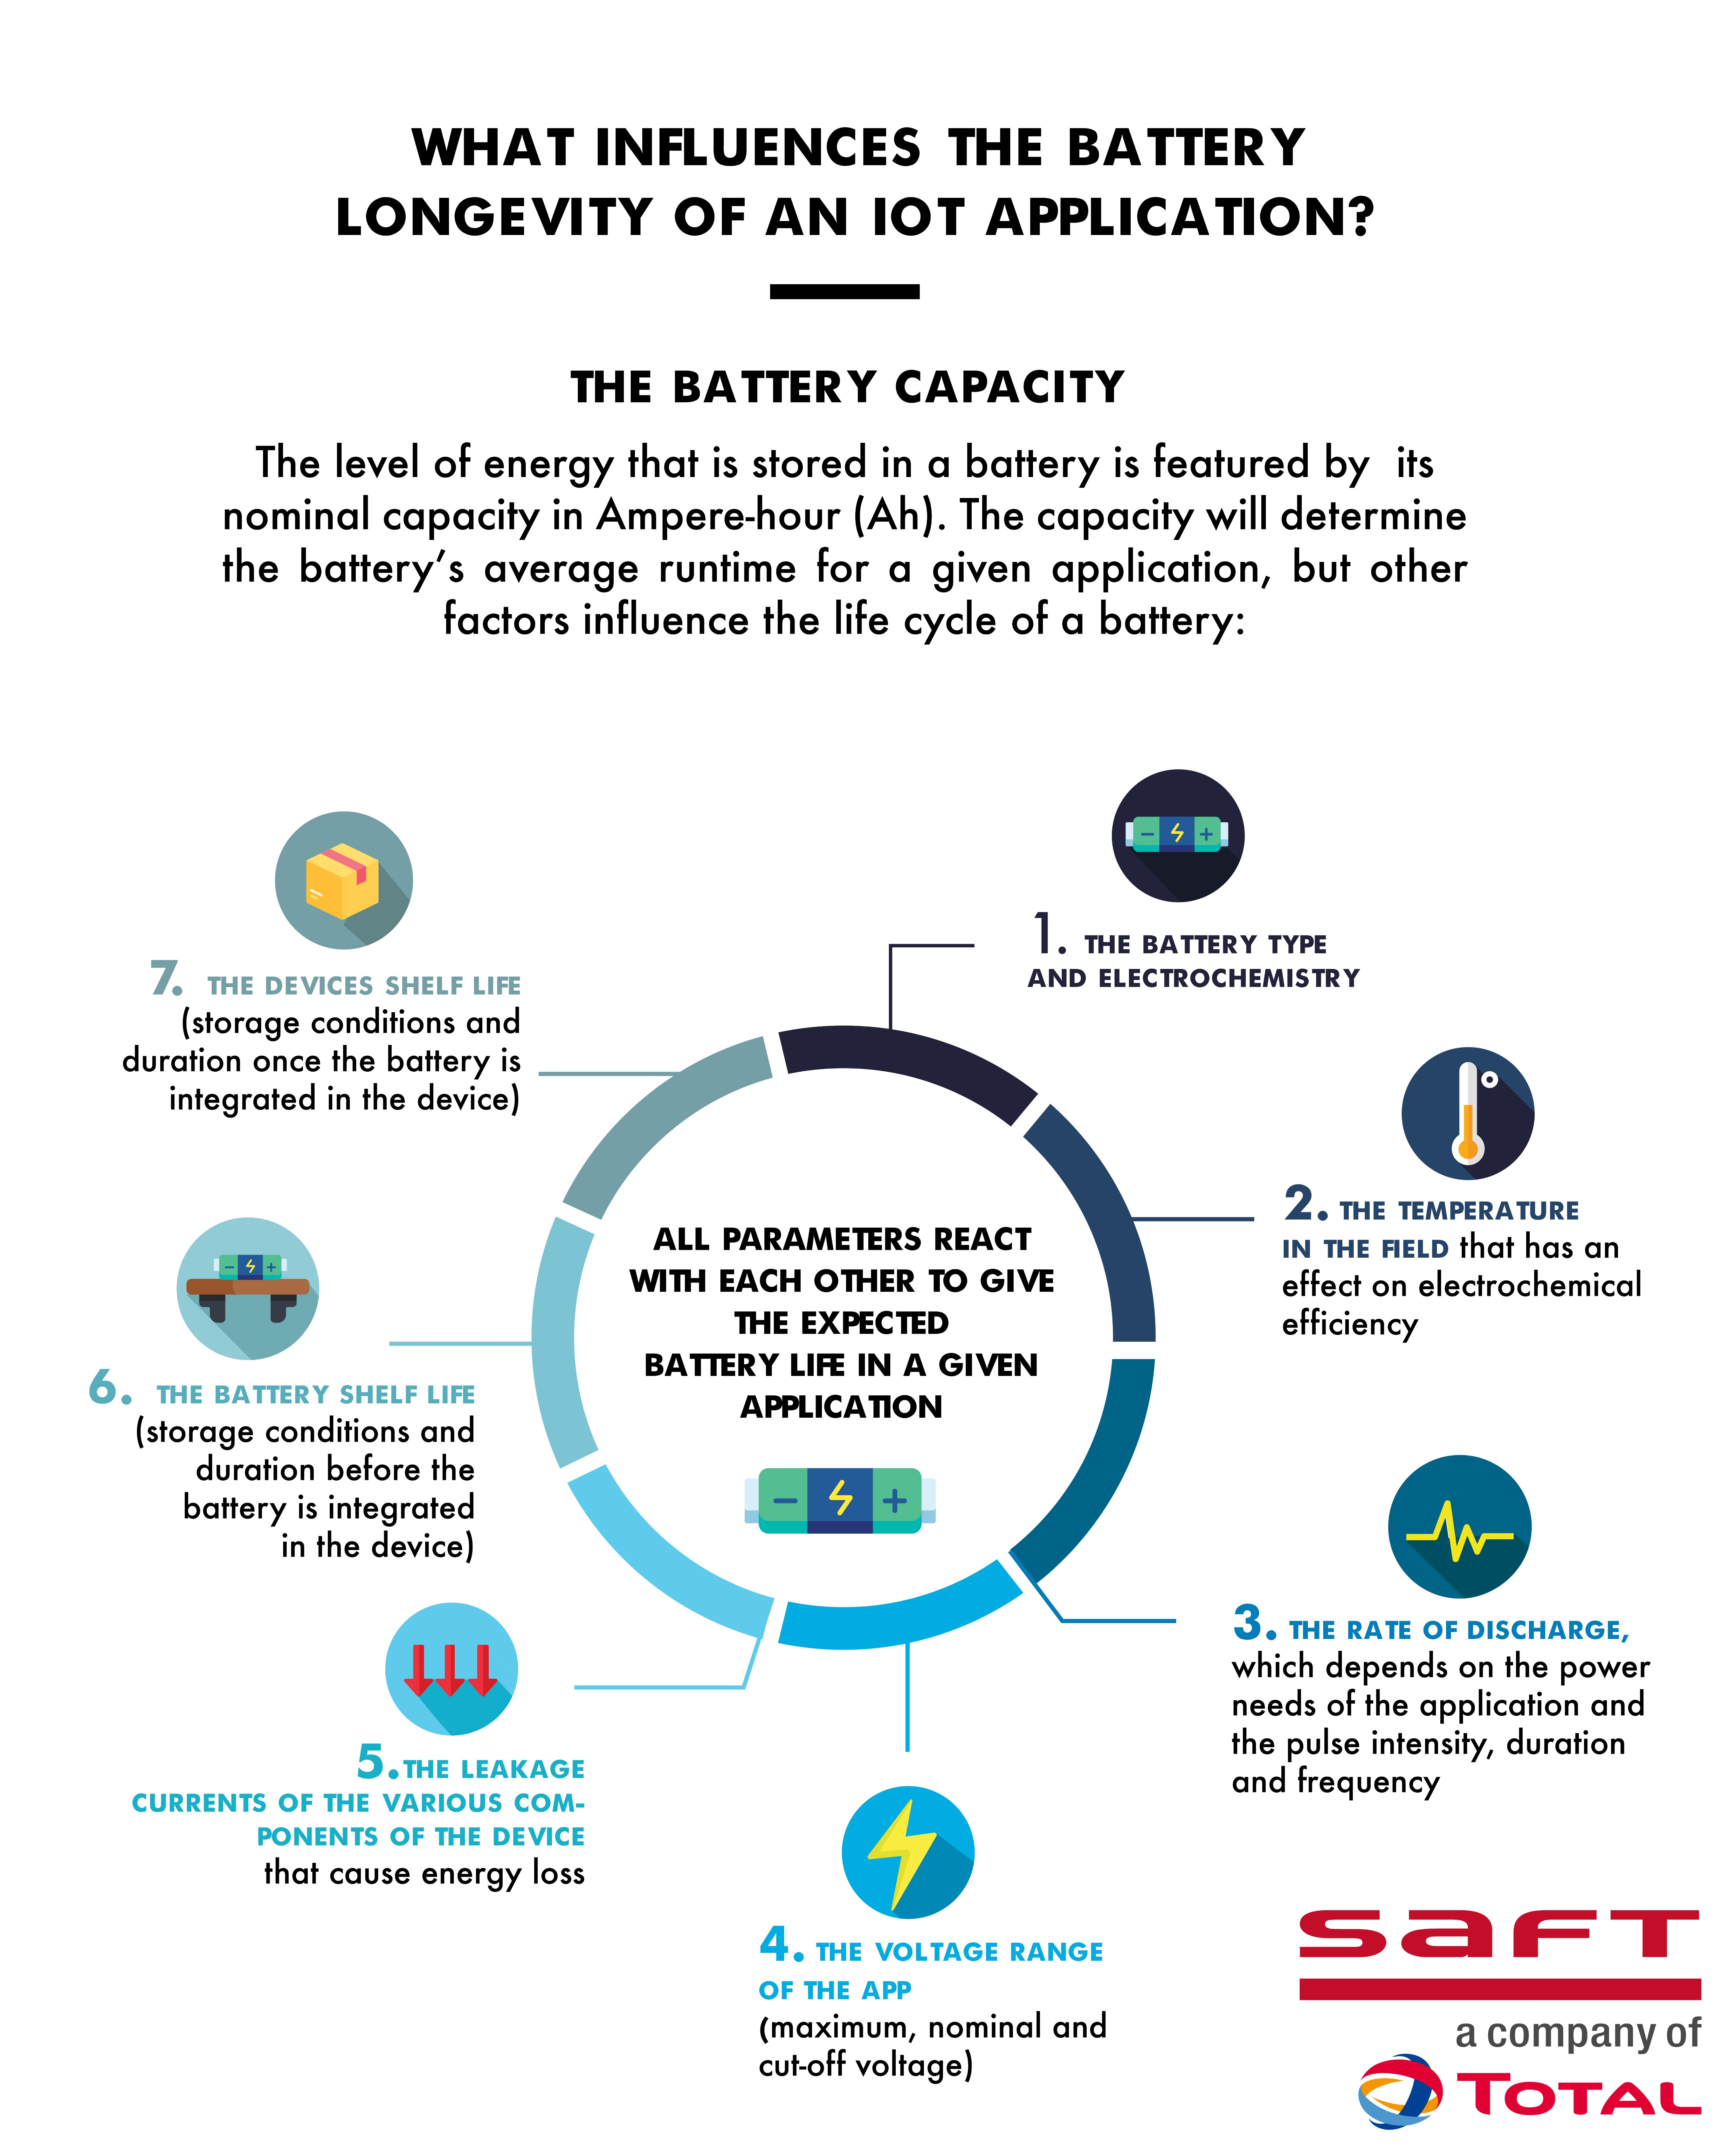 What influence the battery longevity of an IoT application?